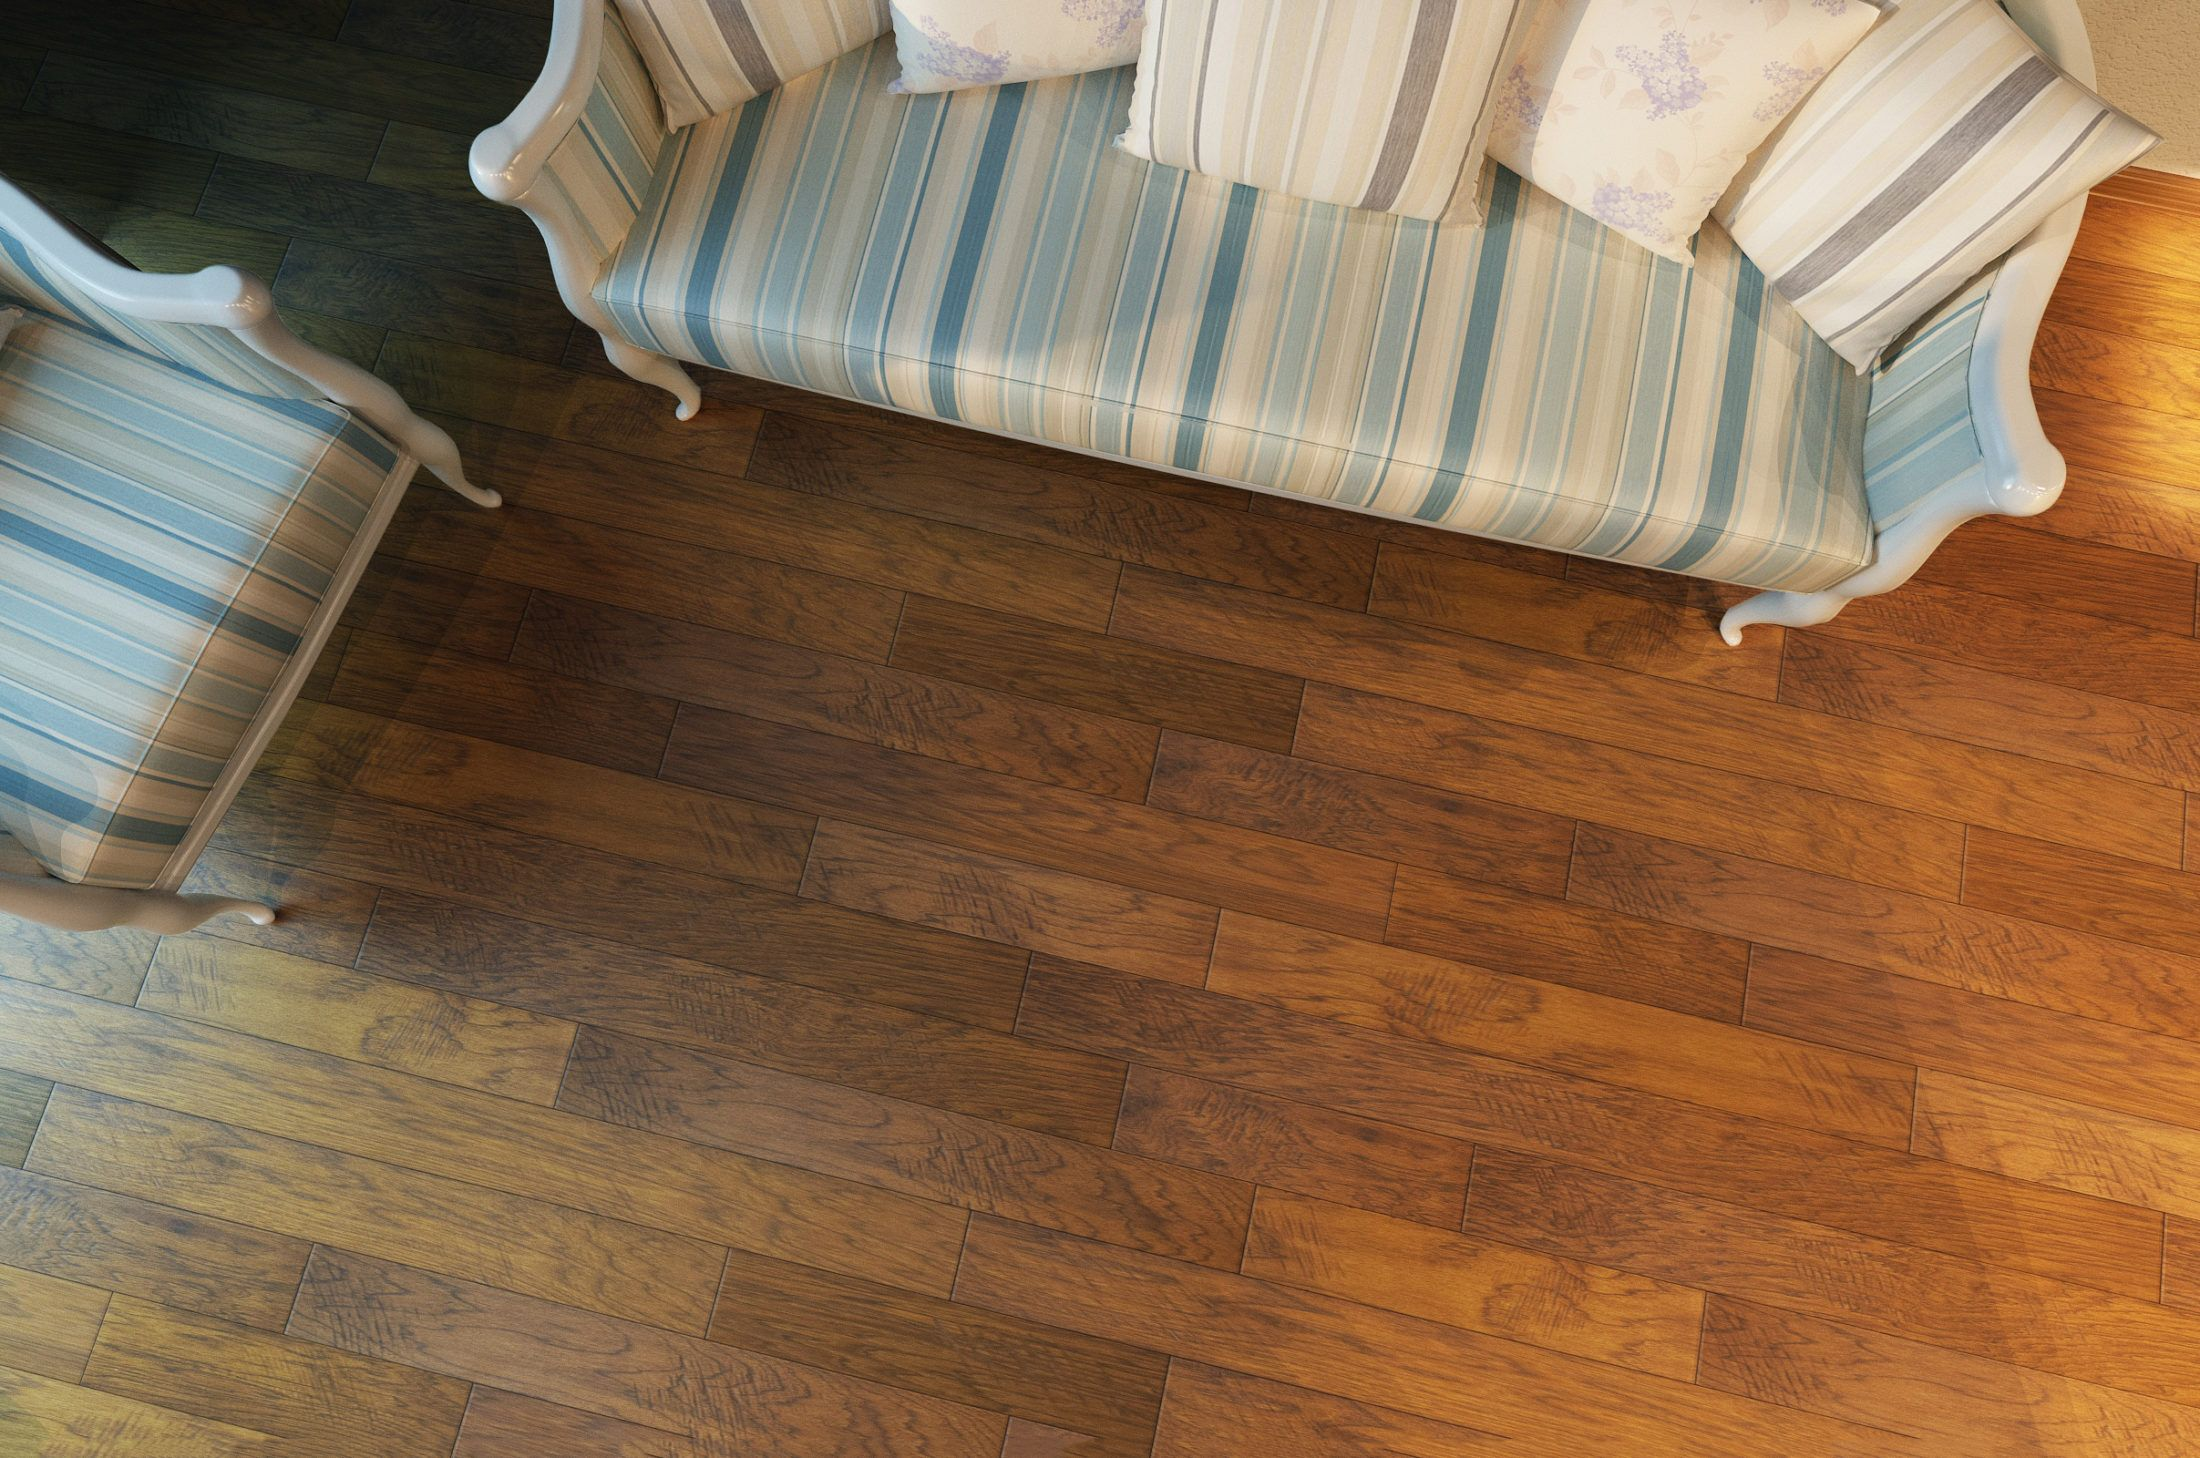 5 X 1 2 Hickory Prairie Engineered Schillings Engineered Flooring Flooring Hardwood